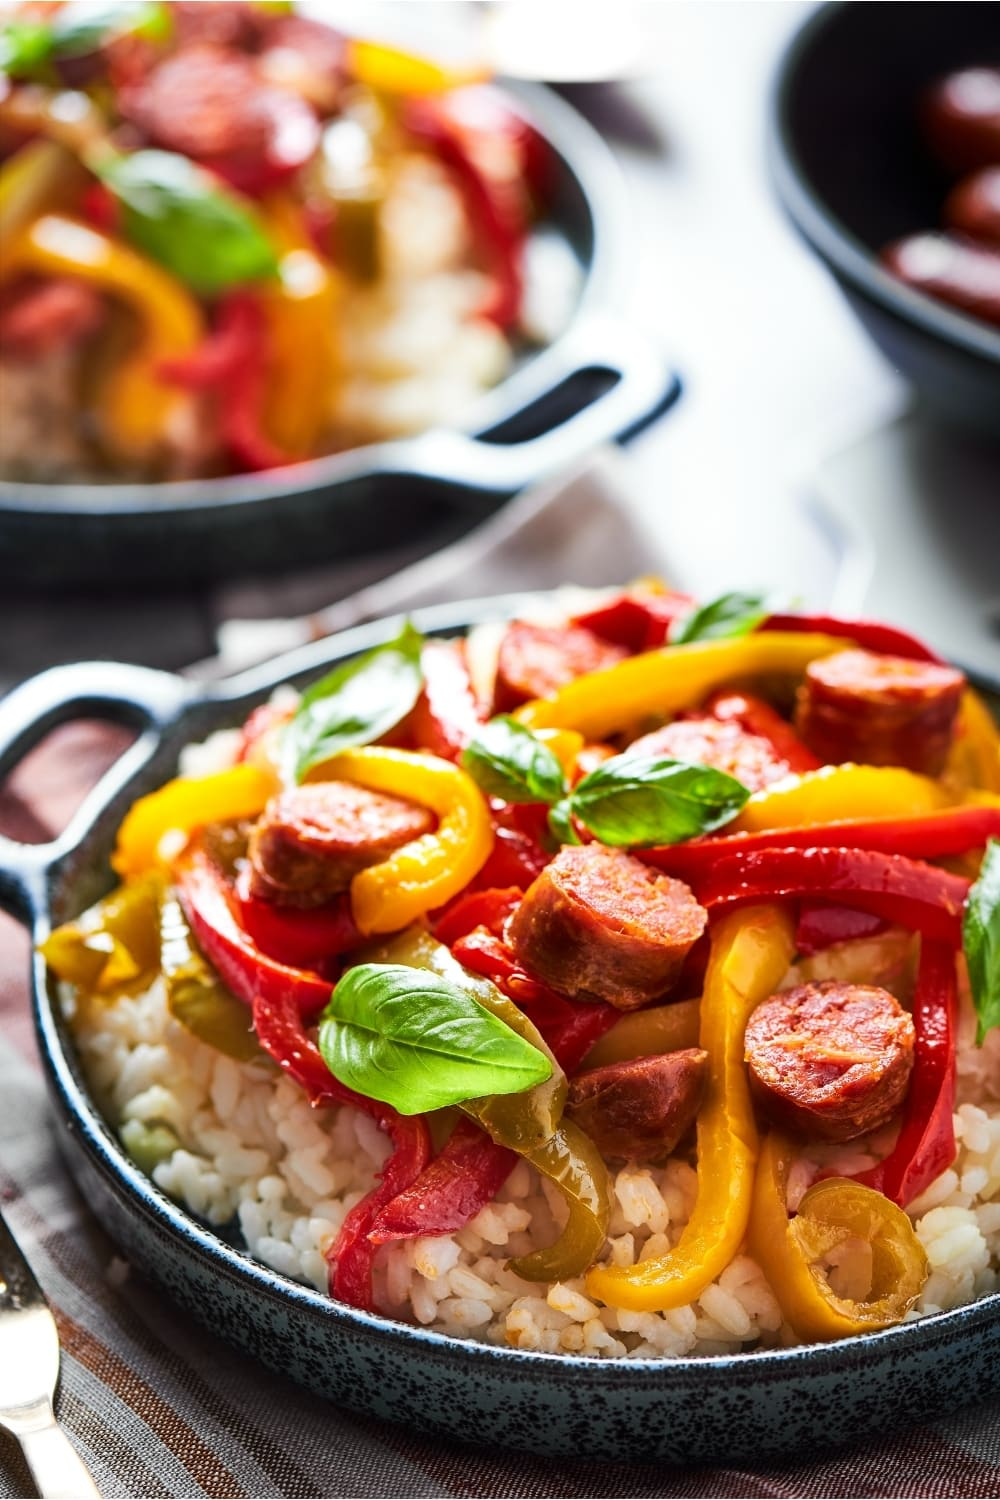 A bowl filled with white rice with sliced red, green, and yellow peppers and onions and slices of Italian sausage on it.